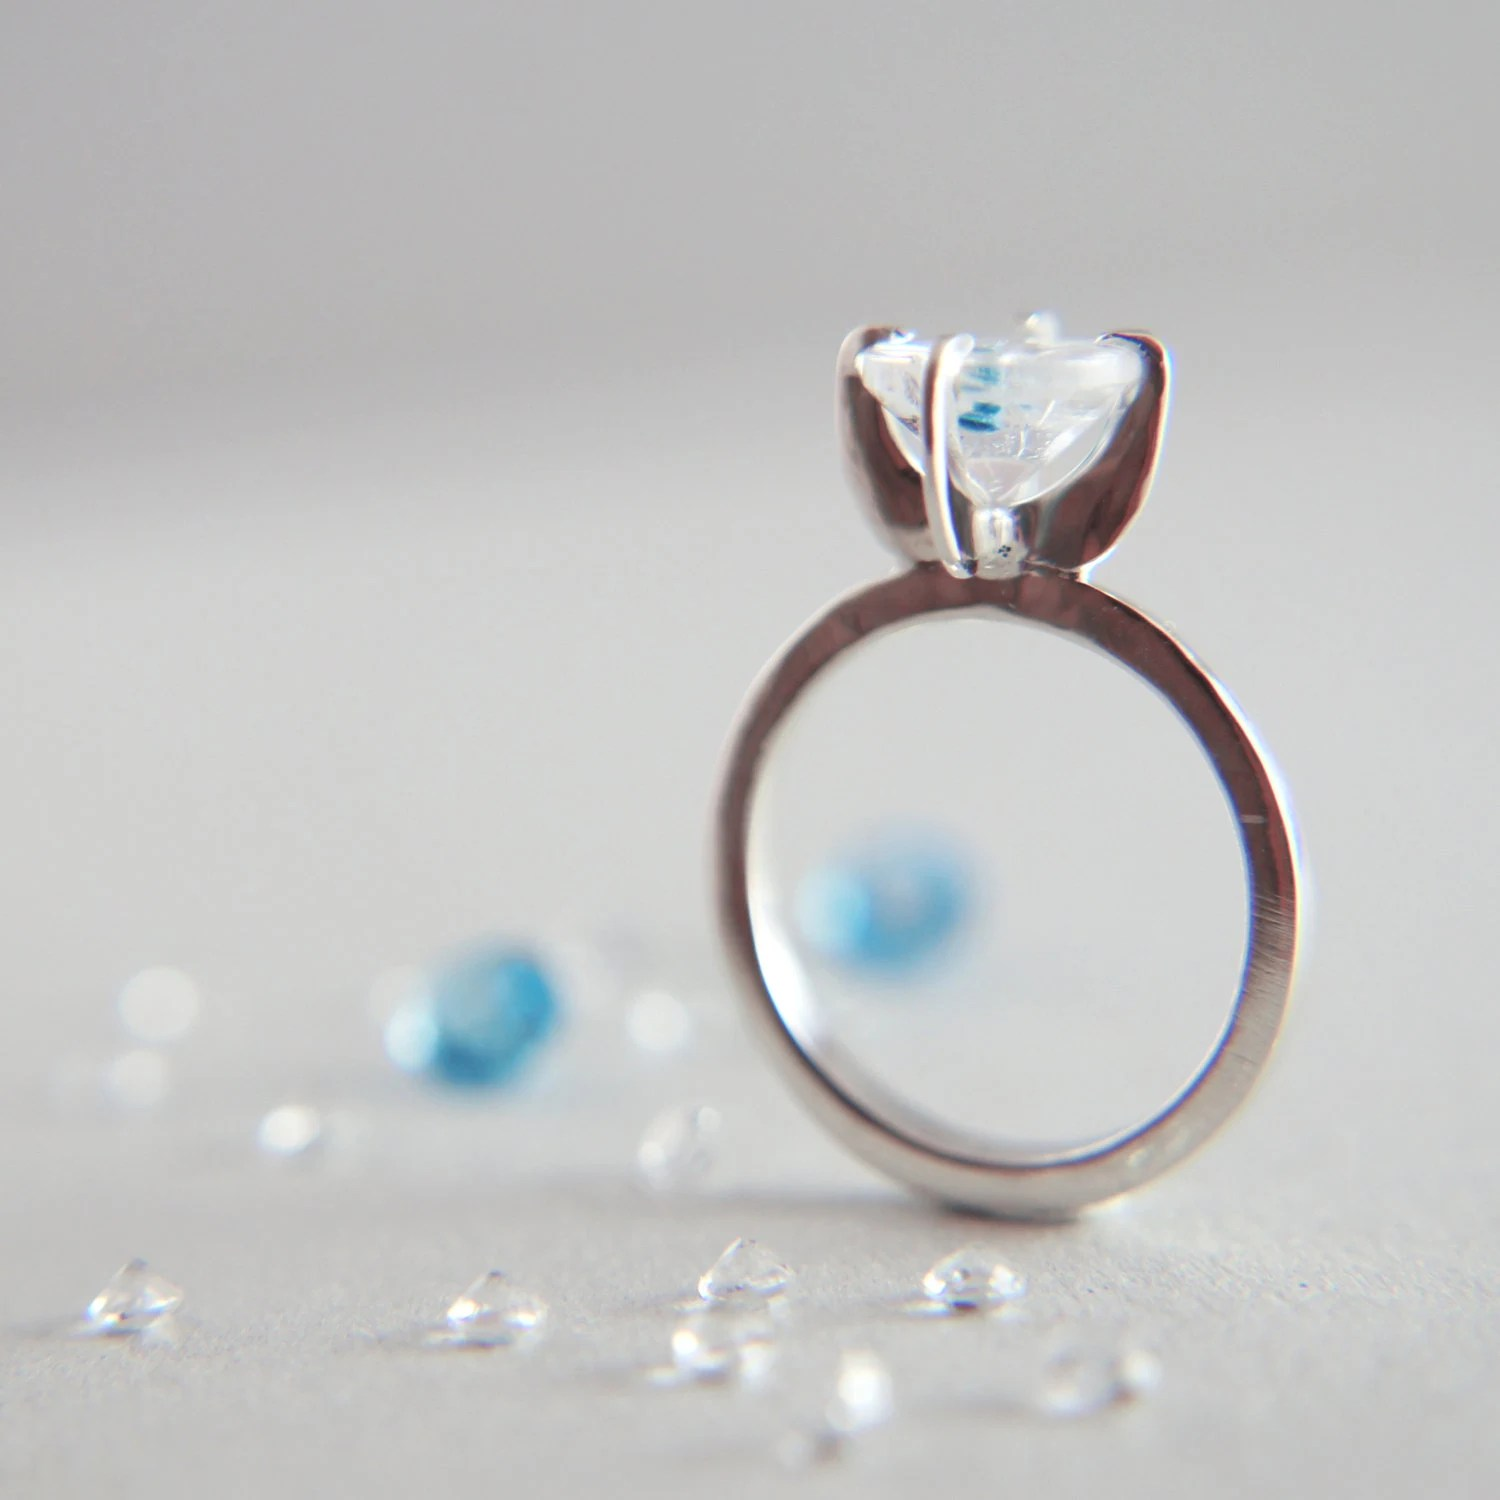 Engagement proposal ring with unusual rare gemstone quartz blue inclusions - sterling silver solitaire eco friendly fine jewelry OOAK - TheManerovs